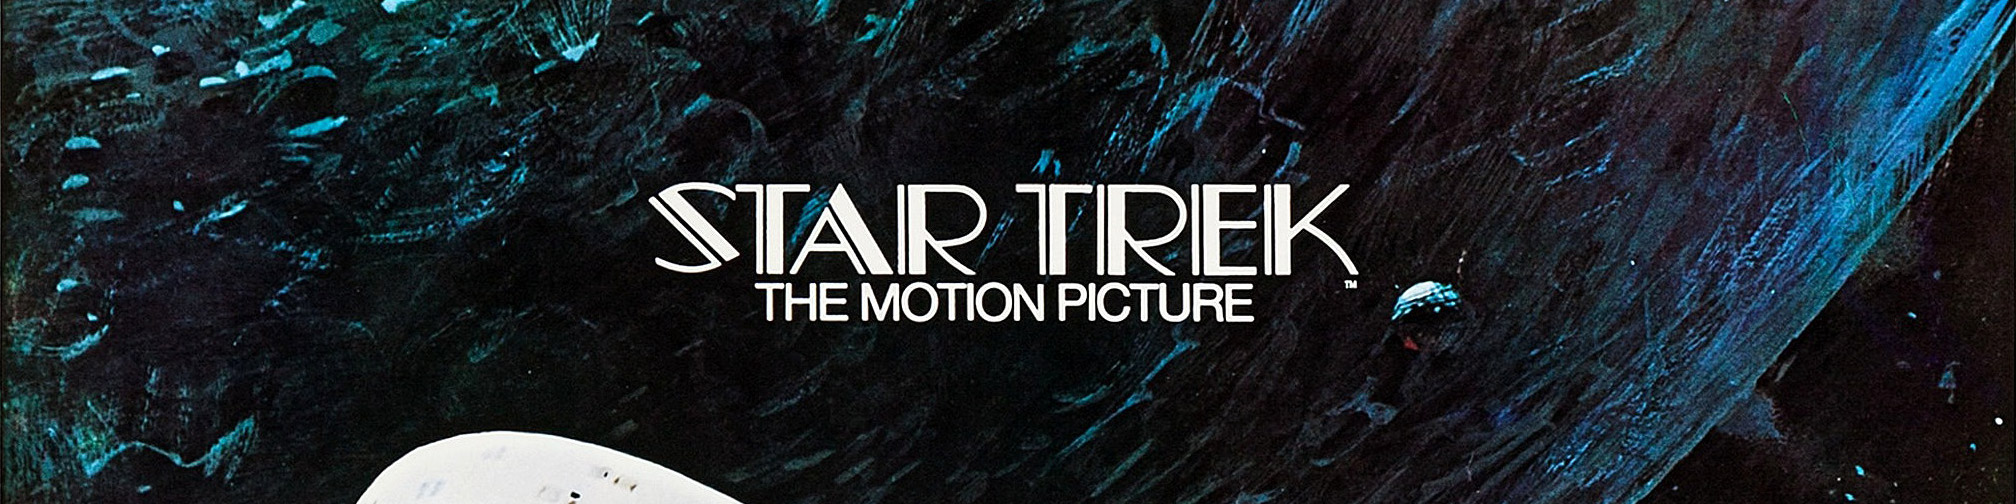 © 1979 Paramount Pictures – The Star Trek movie logo as seen on an alternate poster, designer unknown, for the original motion picture. Click the image to see the complete poster on IMPAwards.